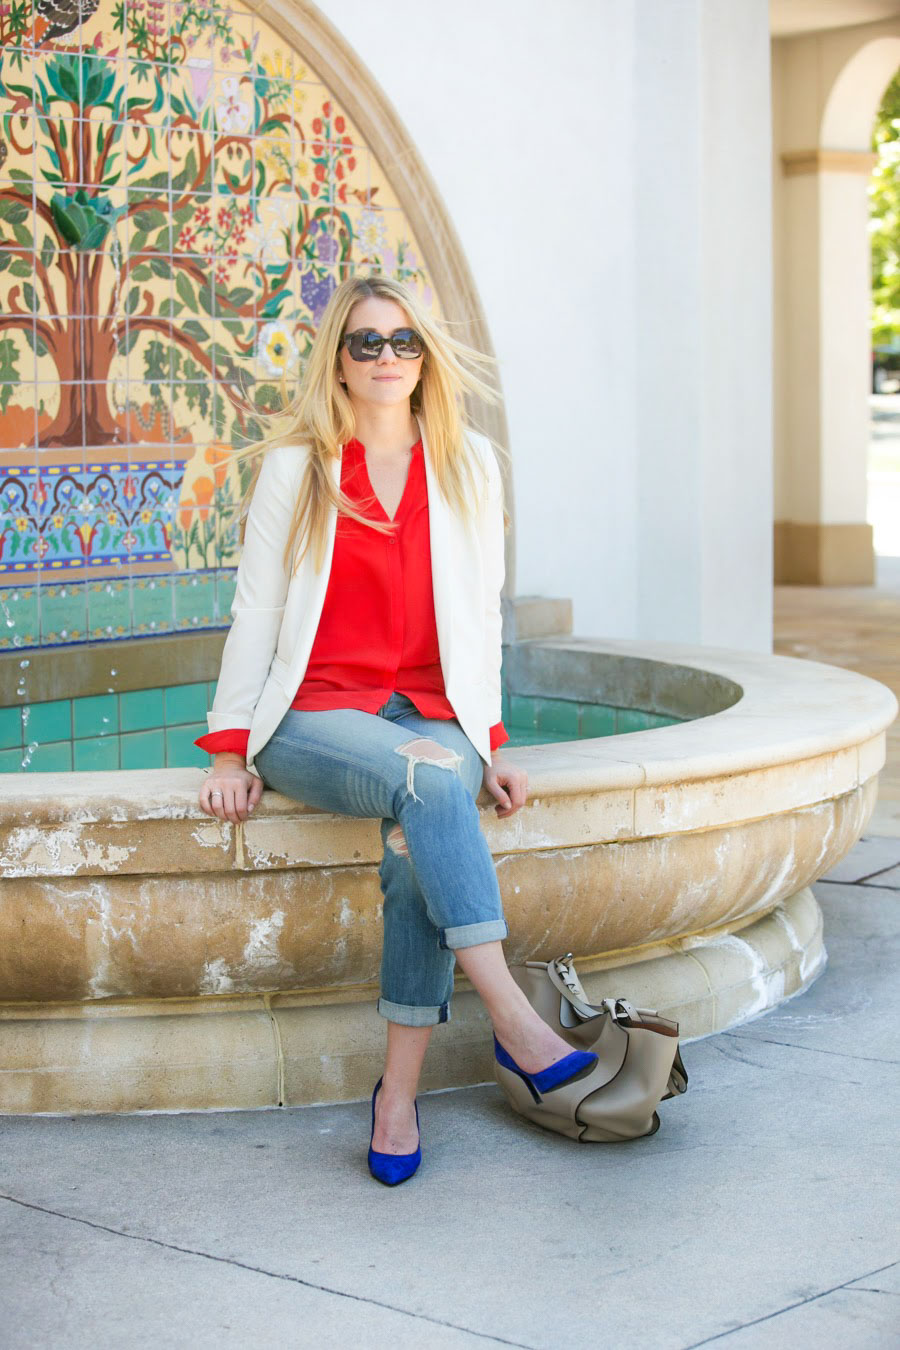 Memorial Day Outfit Ideas | What I Wore to Work/Meetings to be Patriotic | Red, White, + Blue Outfits | Luci's Morsels :: LA Women's Fashion Blog